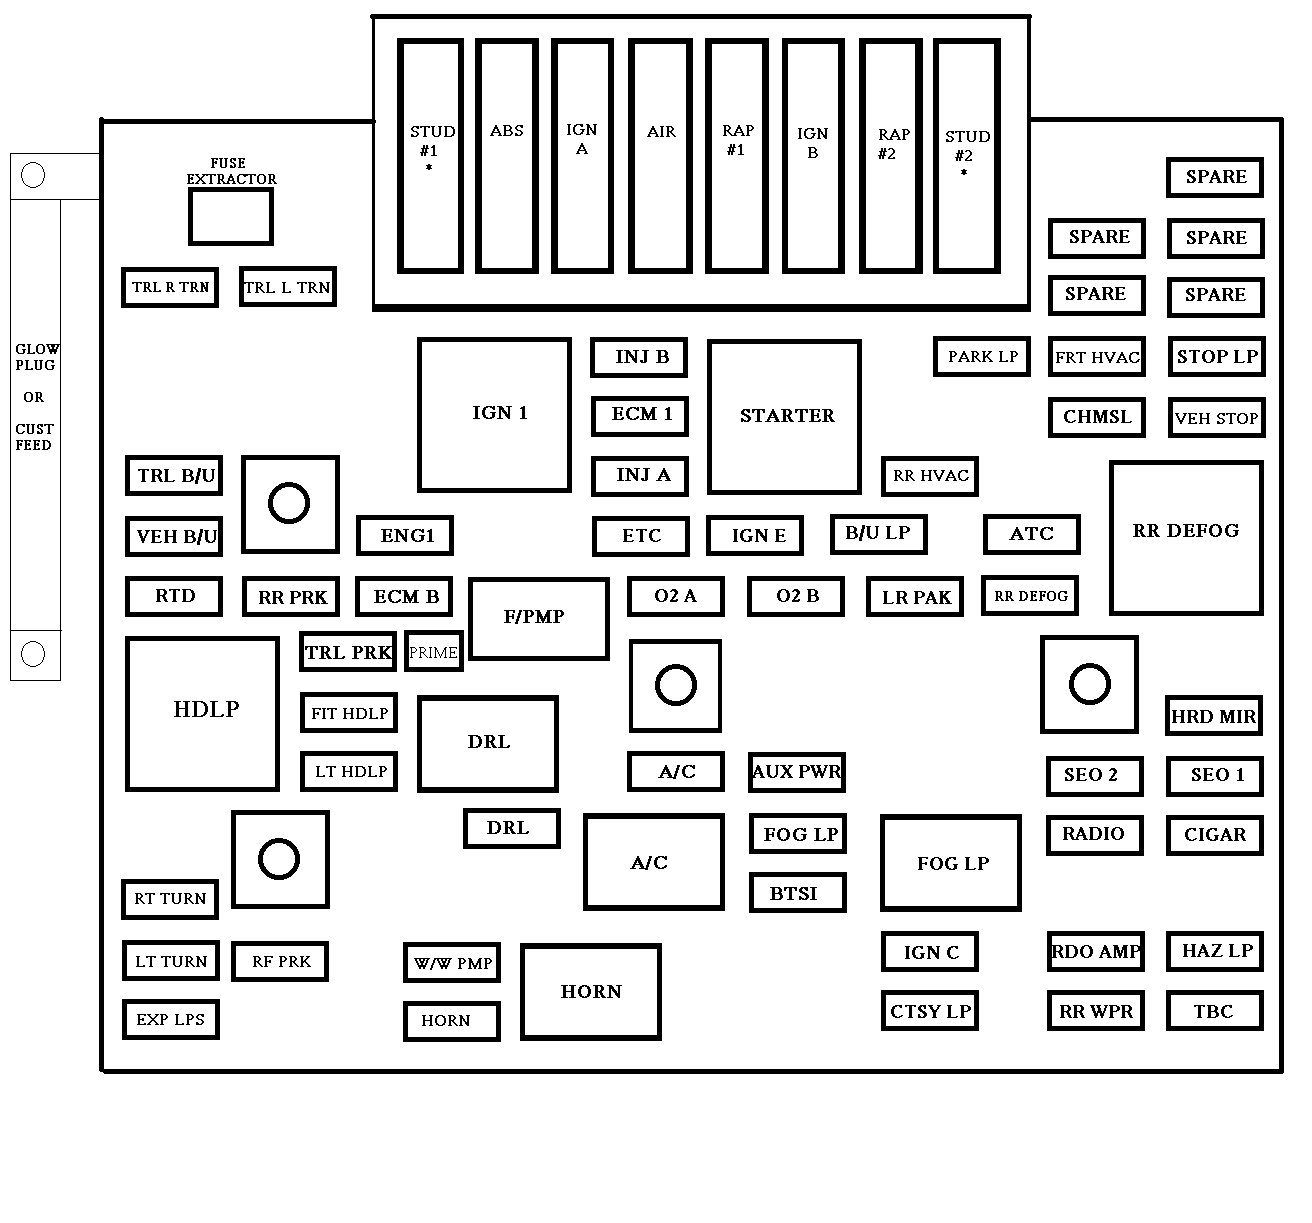 chevy suburban fuse box diagram on 2004 impala fuse panel diagram